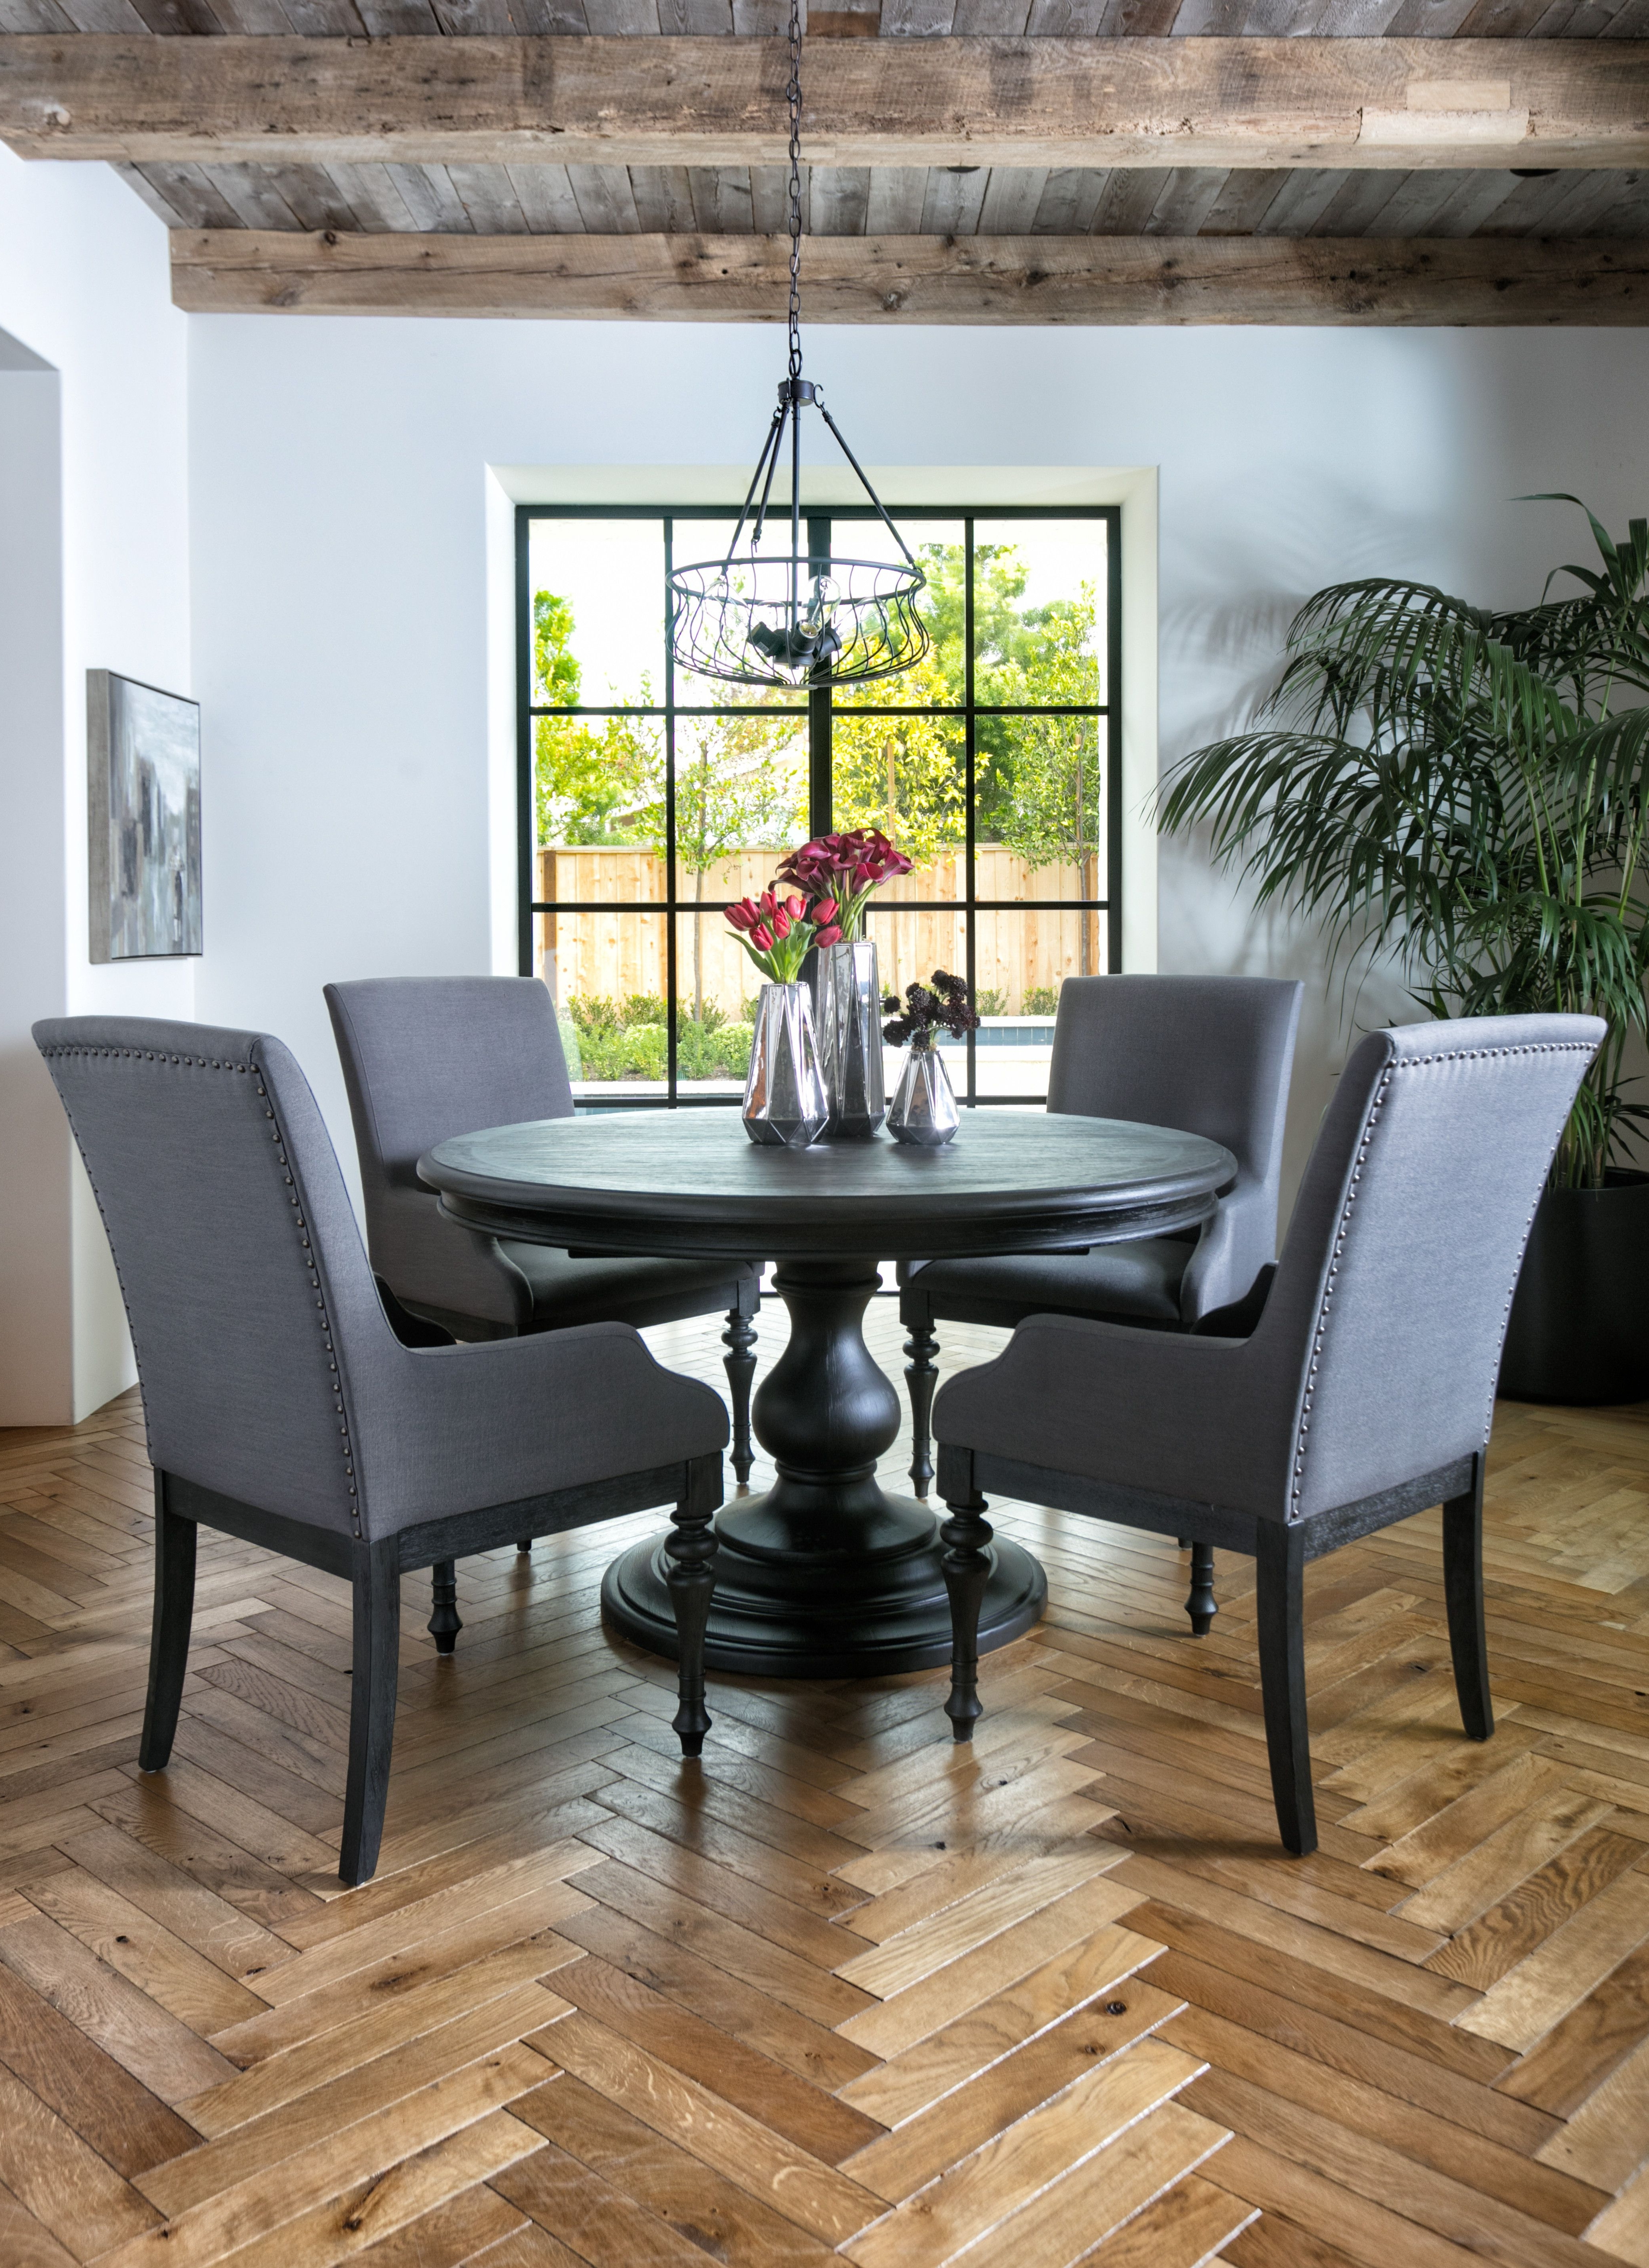 Caira Black 5 Piece Round Dining Set With Diamond Back Side Chairs Regarding Well Known Caira Black Upholstered Diamond Back Side Chairs (View 4 of 20)